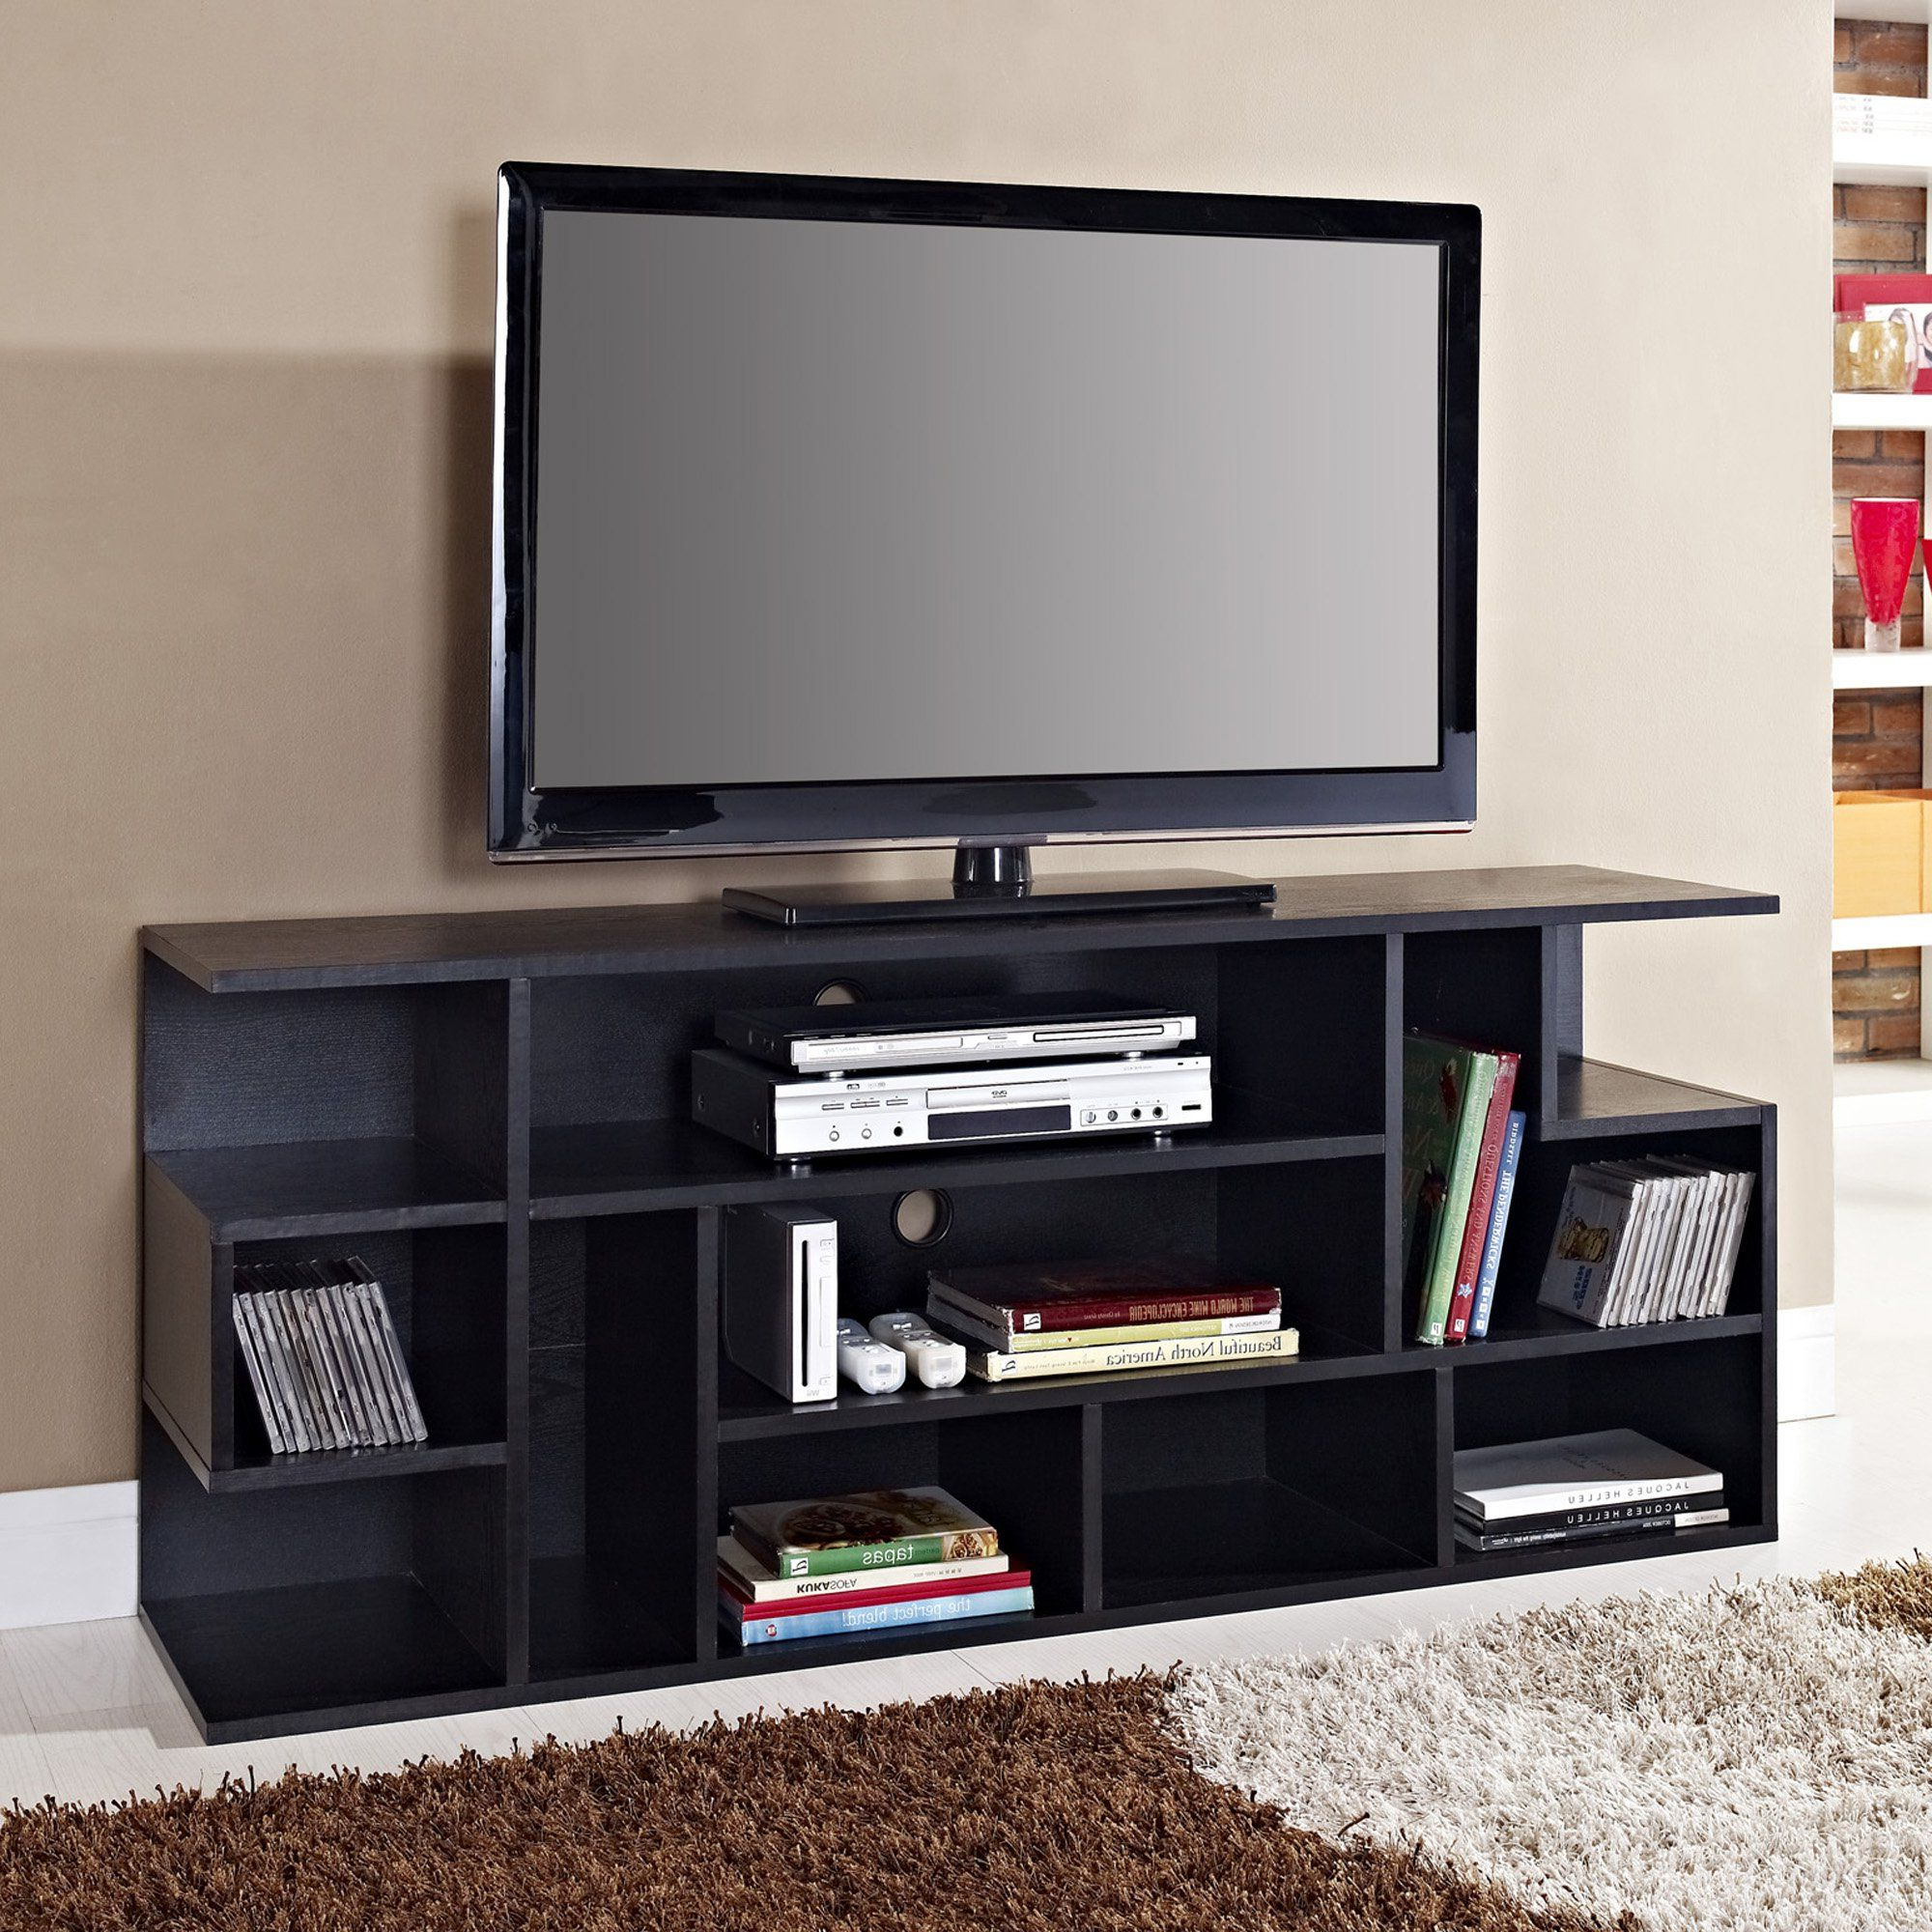 Famous Amazon – We Furniture Wood Modern Style Tv Stand, 60 Intended For Modern Black Floor Glass Tv Stands With Mount (View 3 of 10)